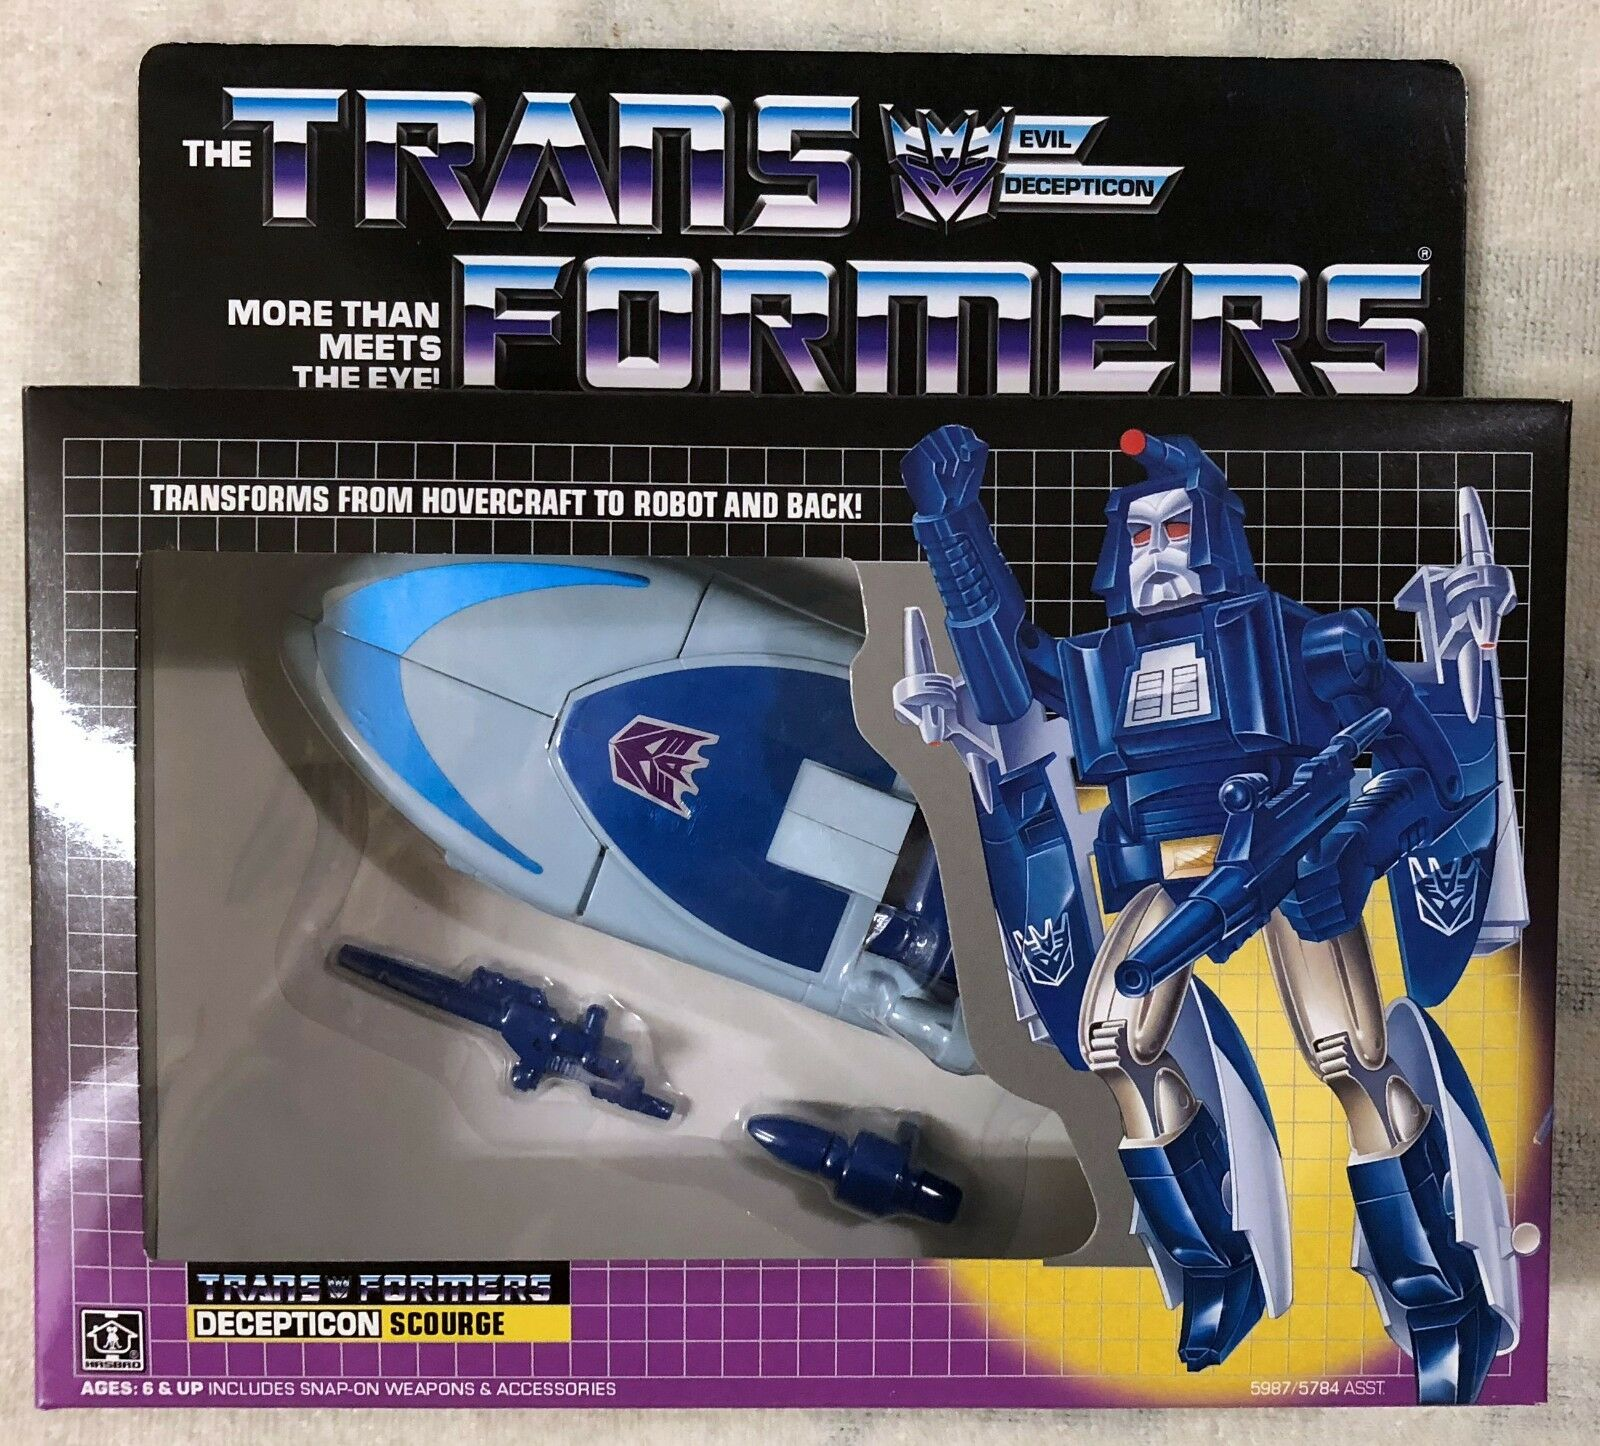 TRANSFORMERS G1 DECEPTICON SCOURGE SCOURGE SCOURGE MISB  US SELLER RARE  d70bfe